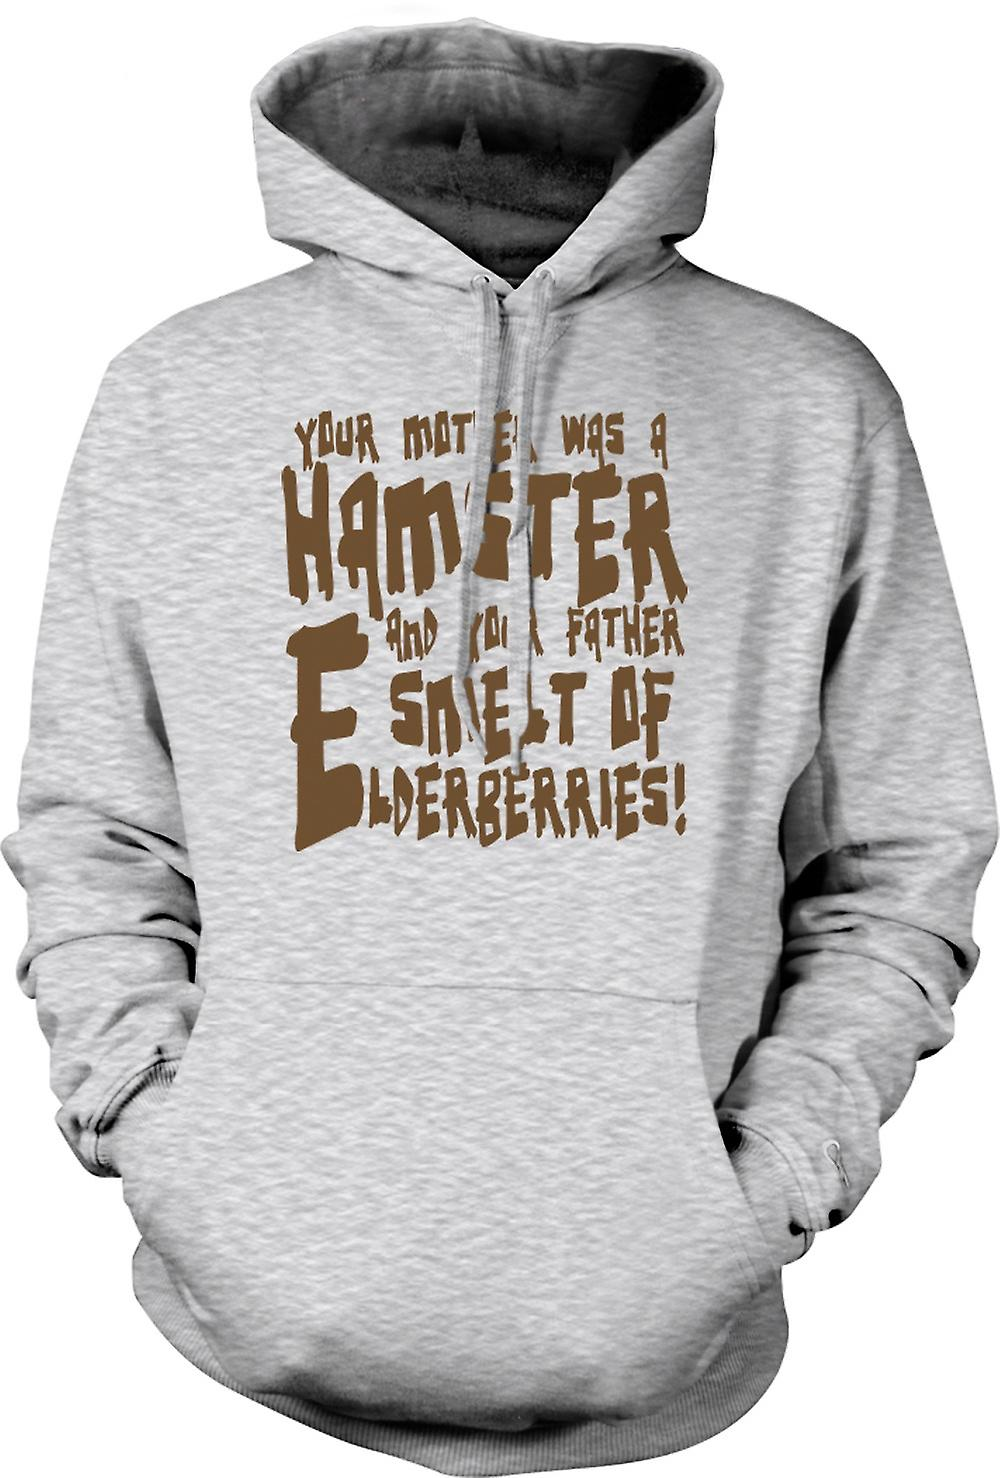 Mens Hoodie - Your mother was a hamster - Funny Quote